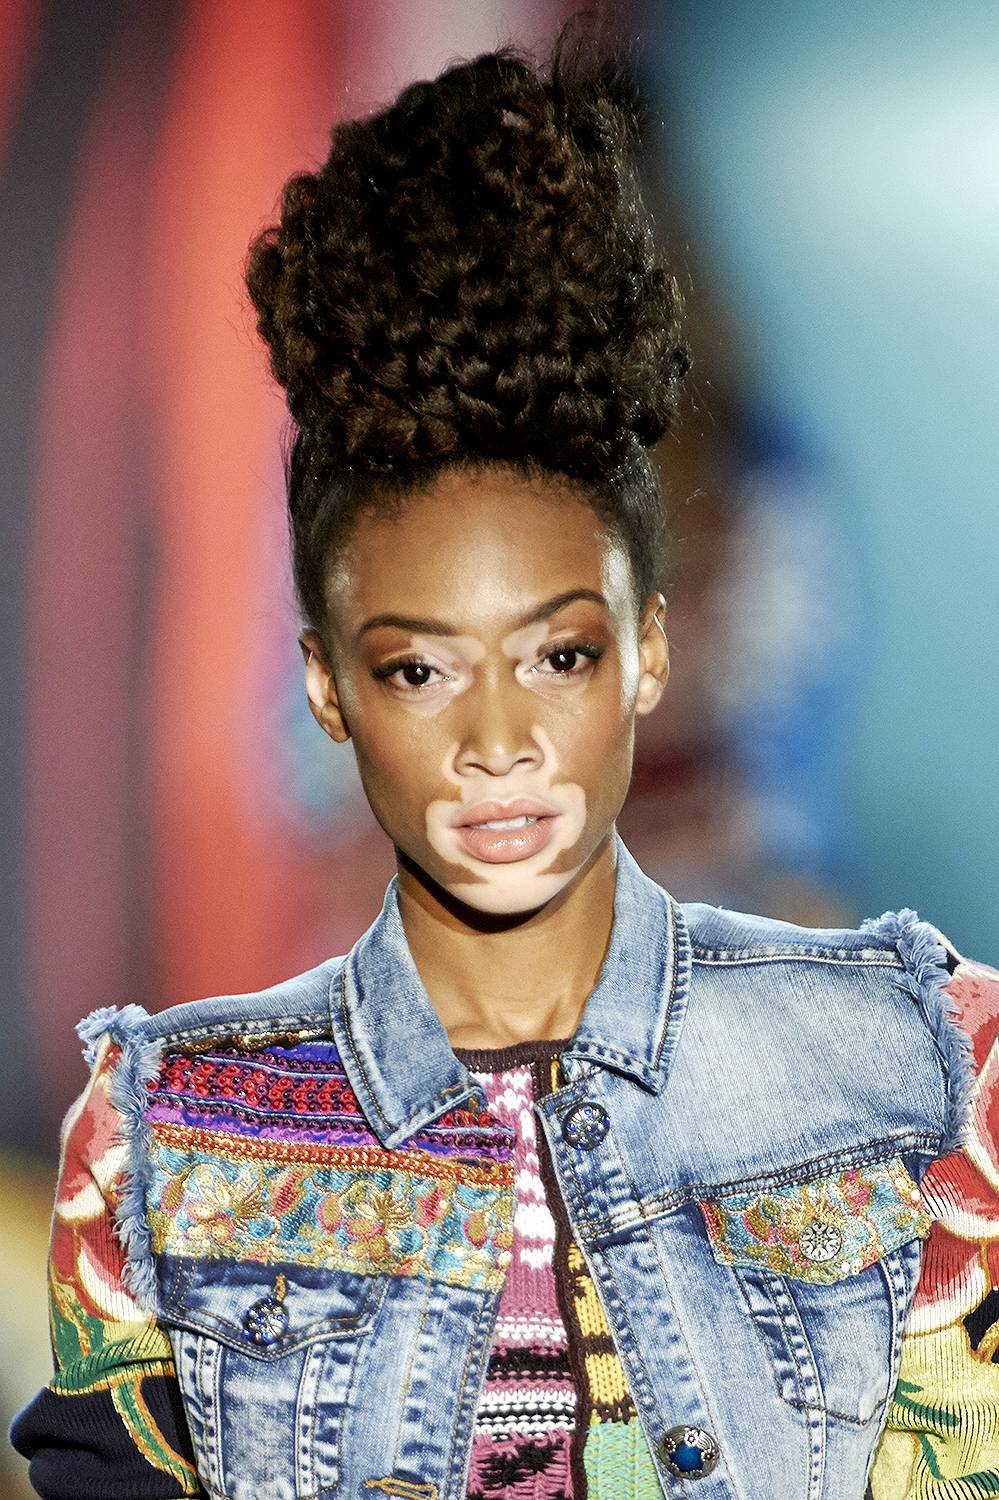 Winnie Harlow - A unique beauty that's changing the landscape of modeling one campaign at a time. (Photo: Carlos Alvarez/Getty Images)